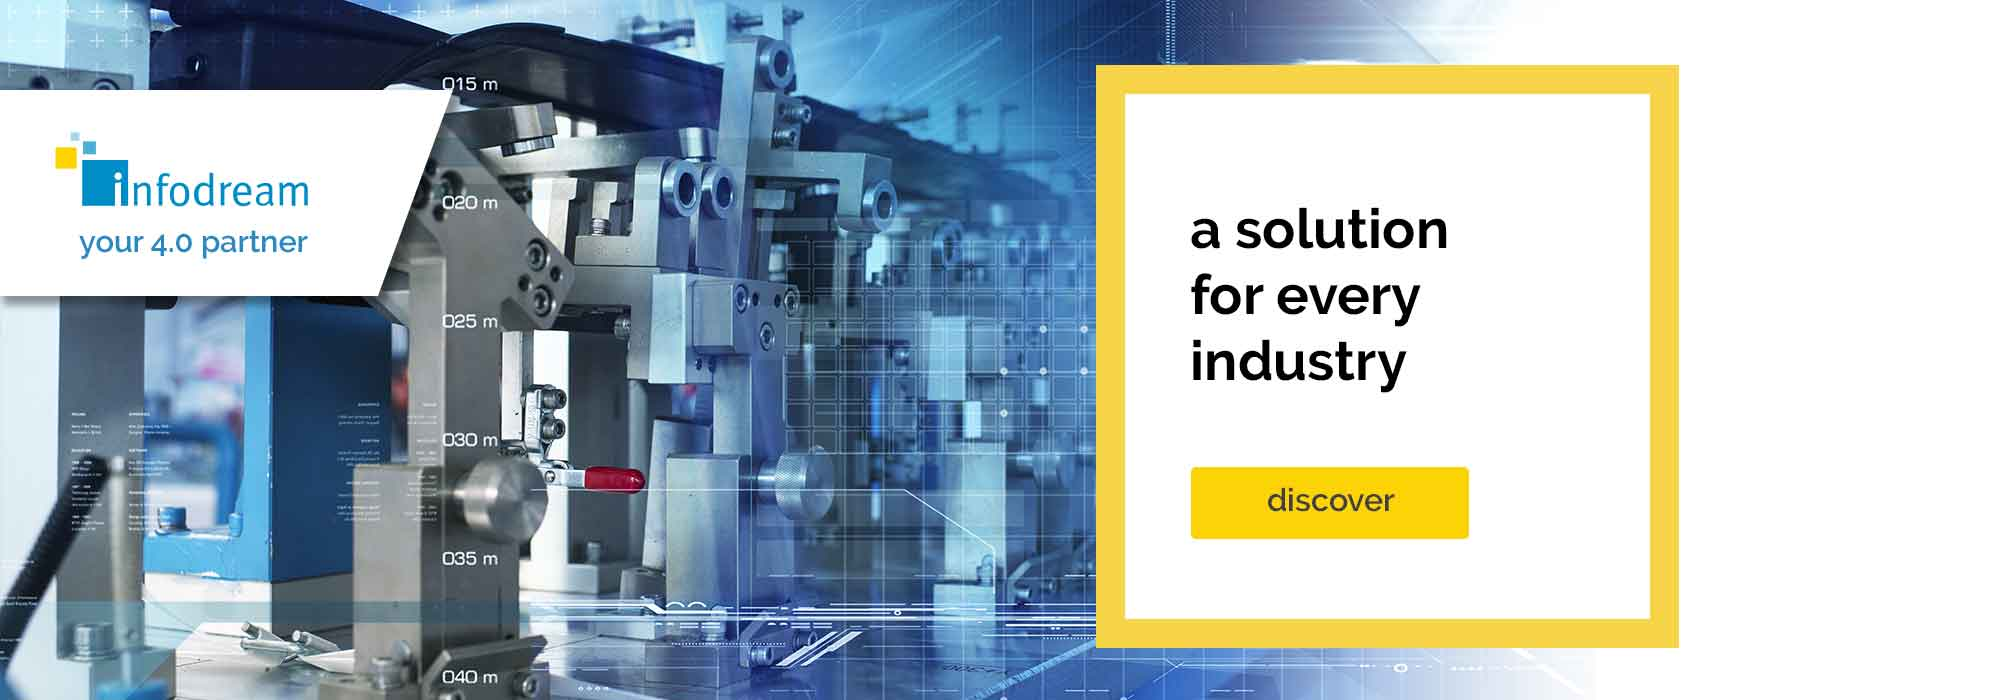 Infodream offers parameterisable MES software for every industry: aerospace, automotive, watchmaking, life sciences, medical, pharmaceutical, electronics and defence, etc.